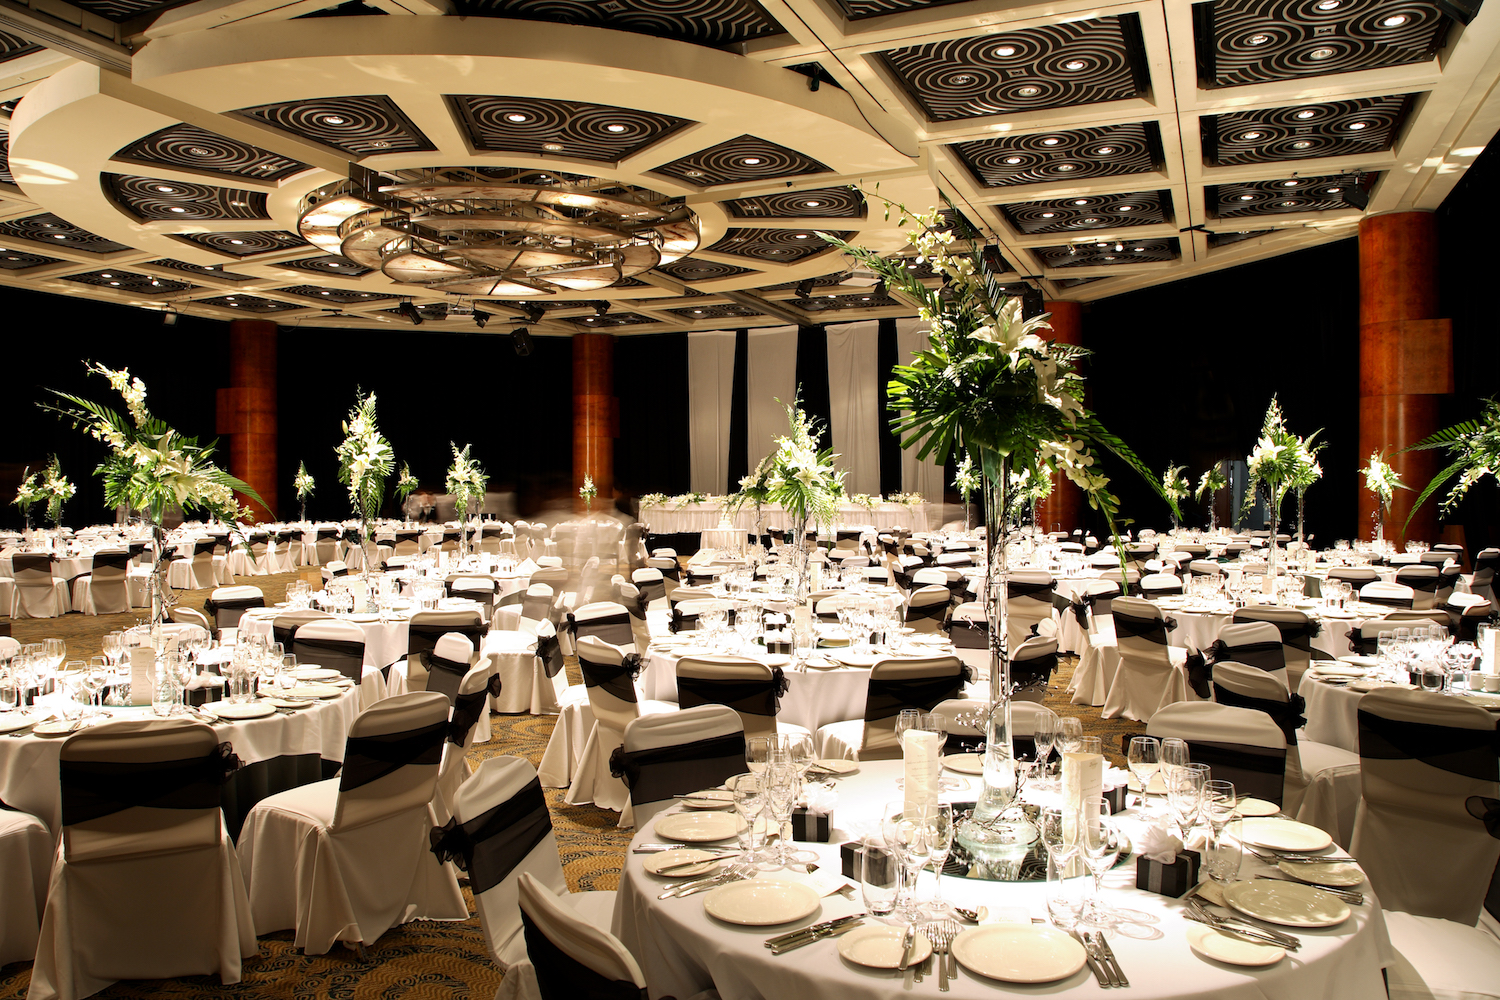 GRAND BALLROOM - 550 Seated / 1000 Cocktail